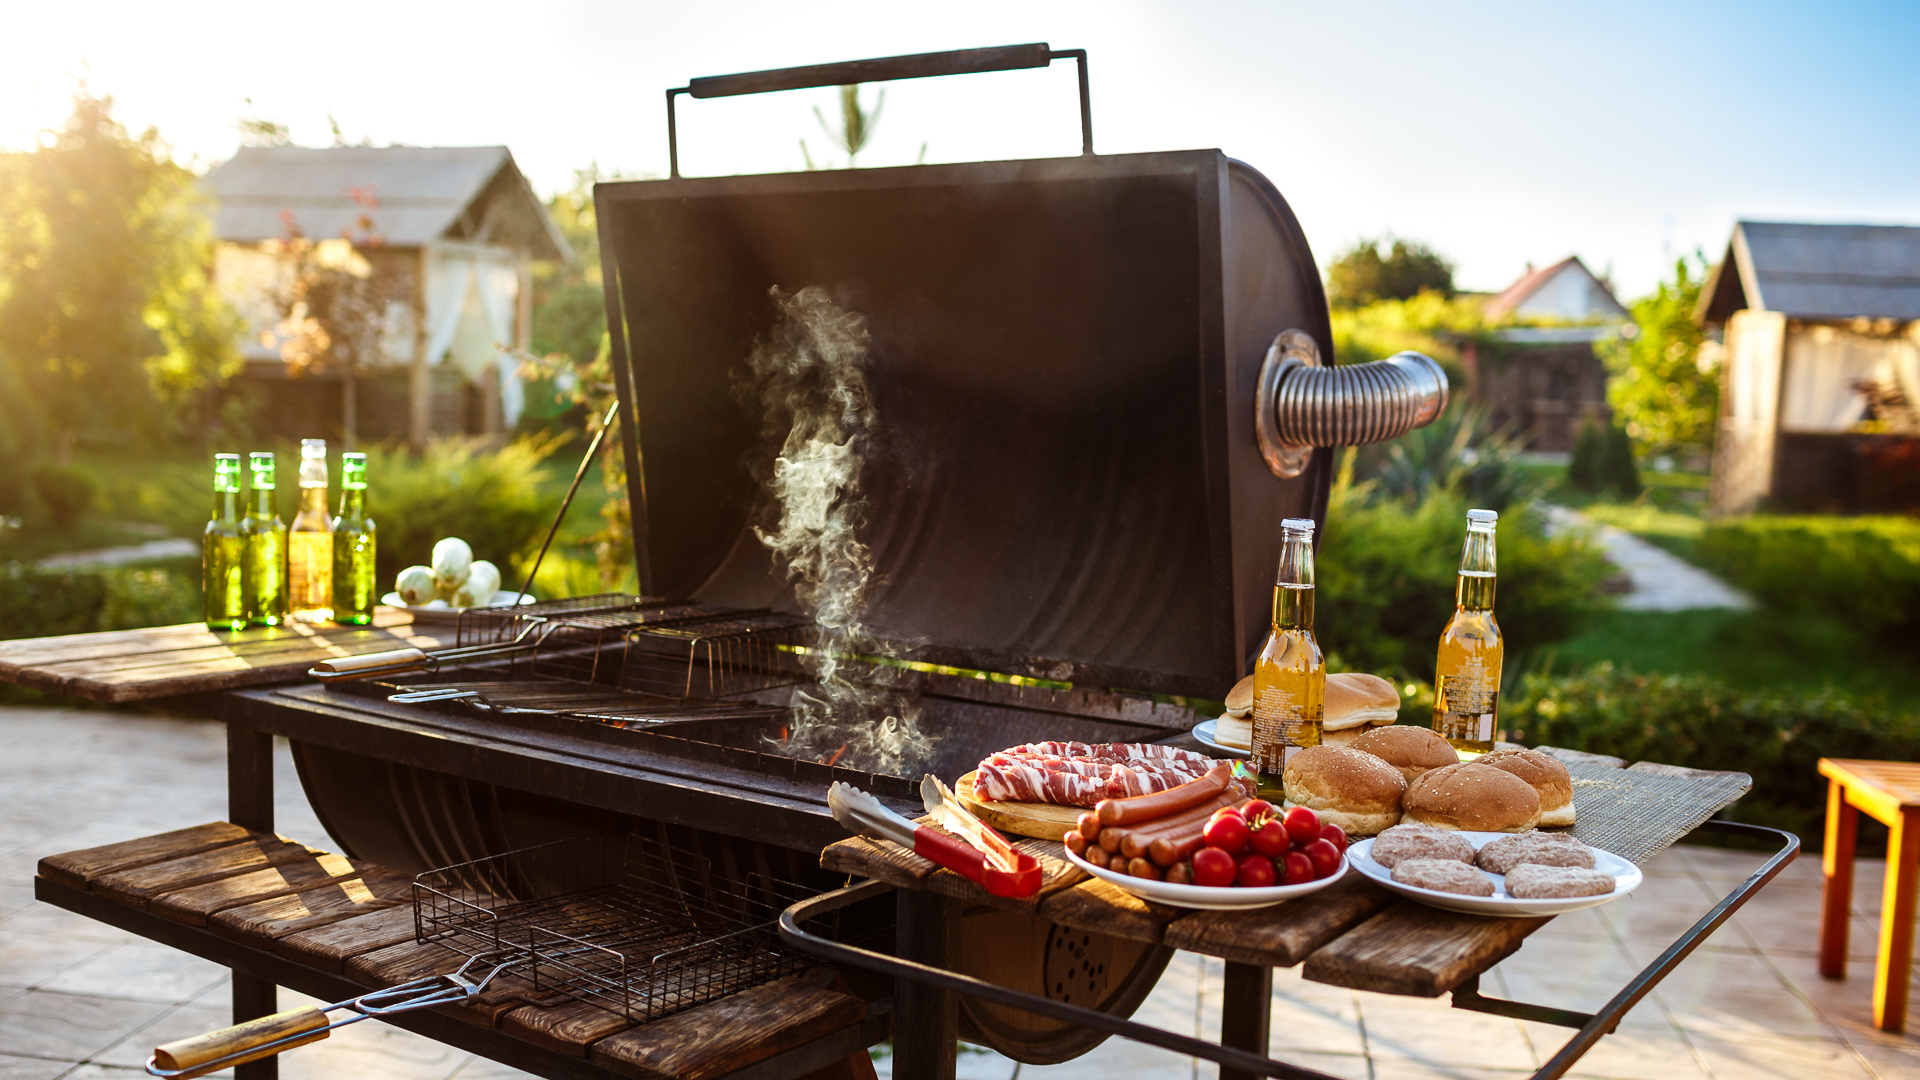 How Costco Can Help You Plan a Healthy and Affordable Summer BBQ